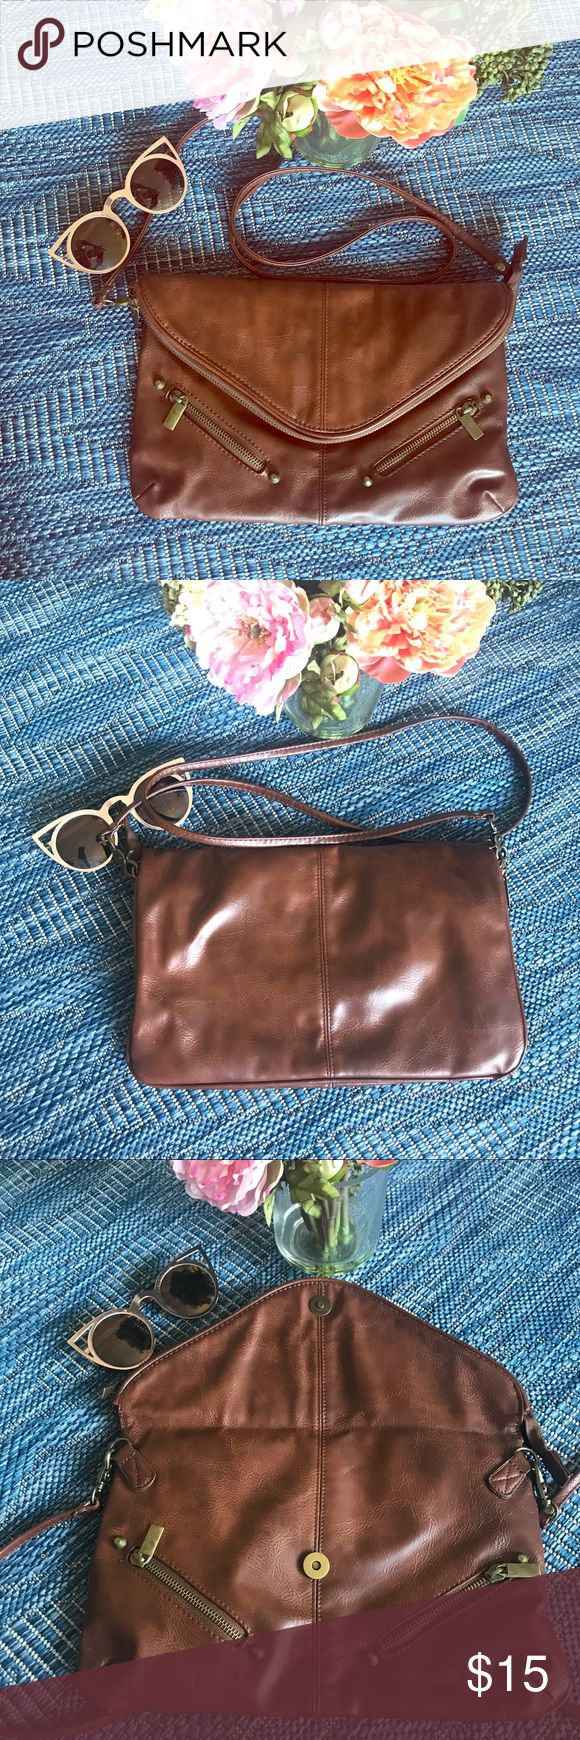 "Topshop Purse Brown/ Tan crossbody from Topshop. Can be worn across or over the shoulder. Two zippers on the front with pockets. Zipper pocket inside. Fold over zipper flap. Clean interior. Removable strap. 13""x 8.5"". 50"" strap. Topshop Bags Crossbody Bags"